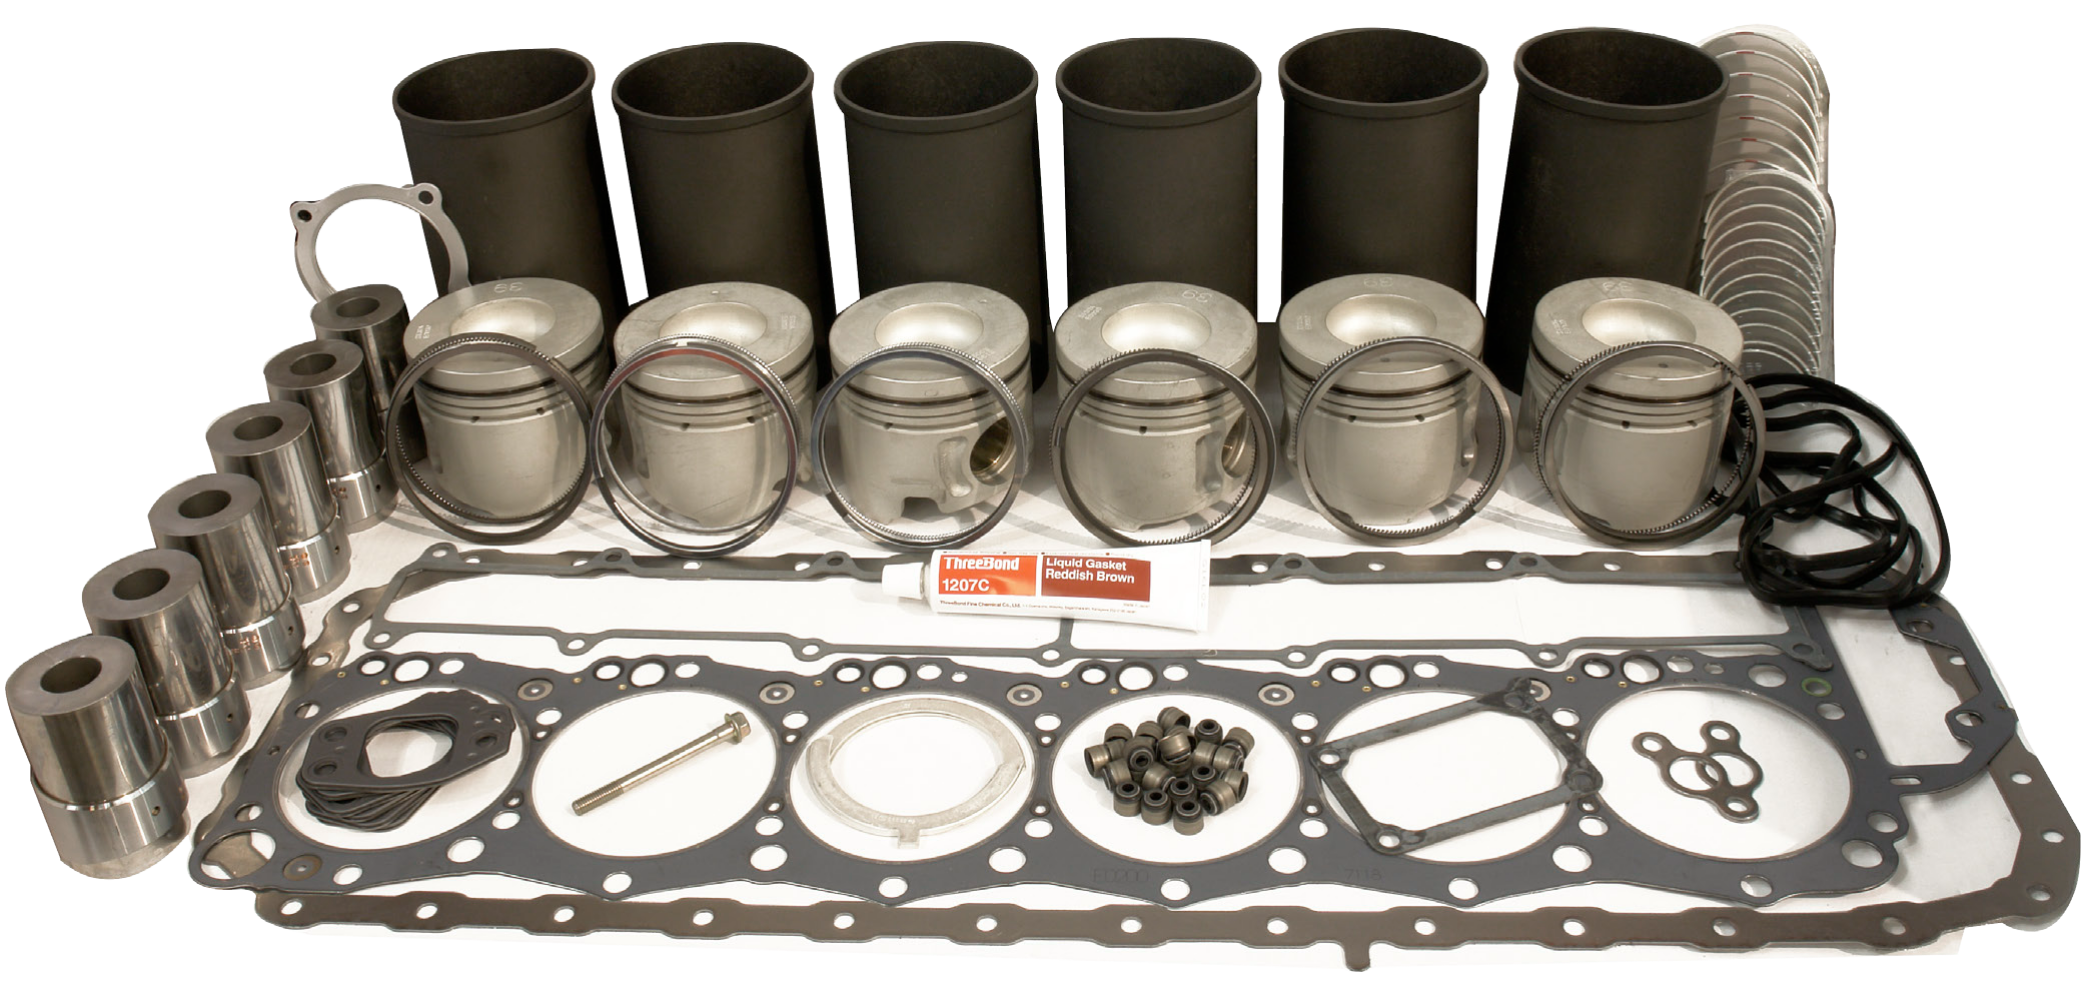 Full range of genuine Hino in-frame engine kits designed, calibrated and engineered specifically for the Hino truck.